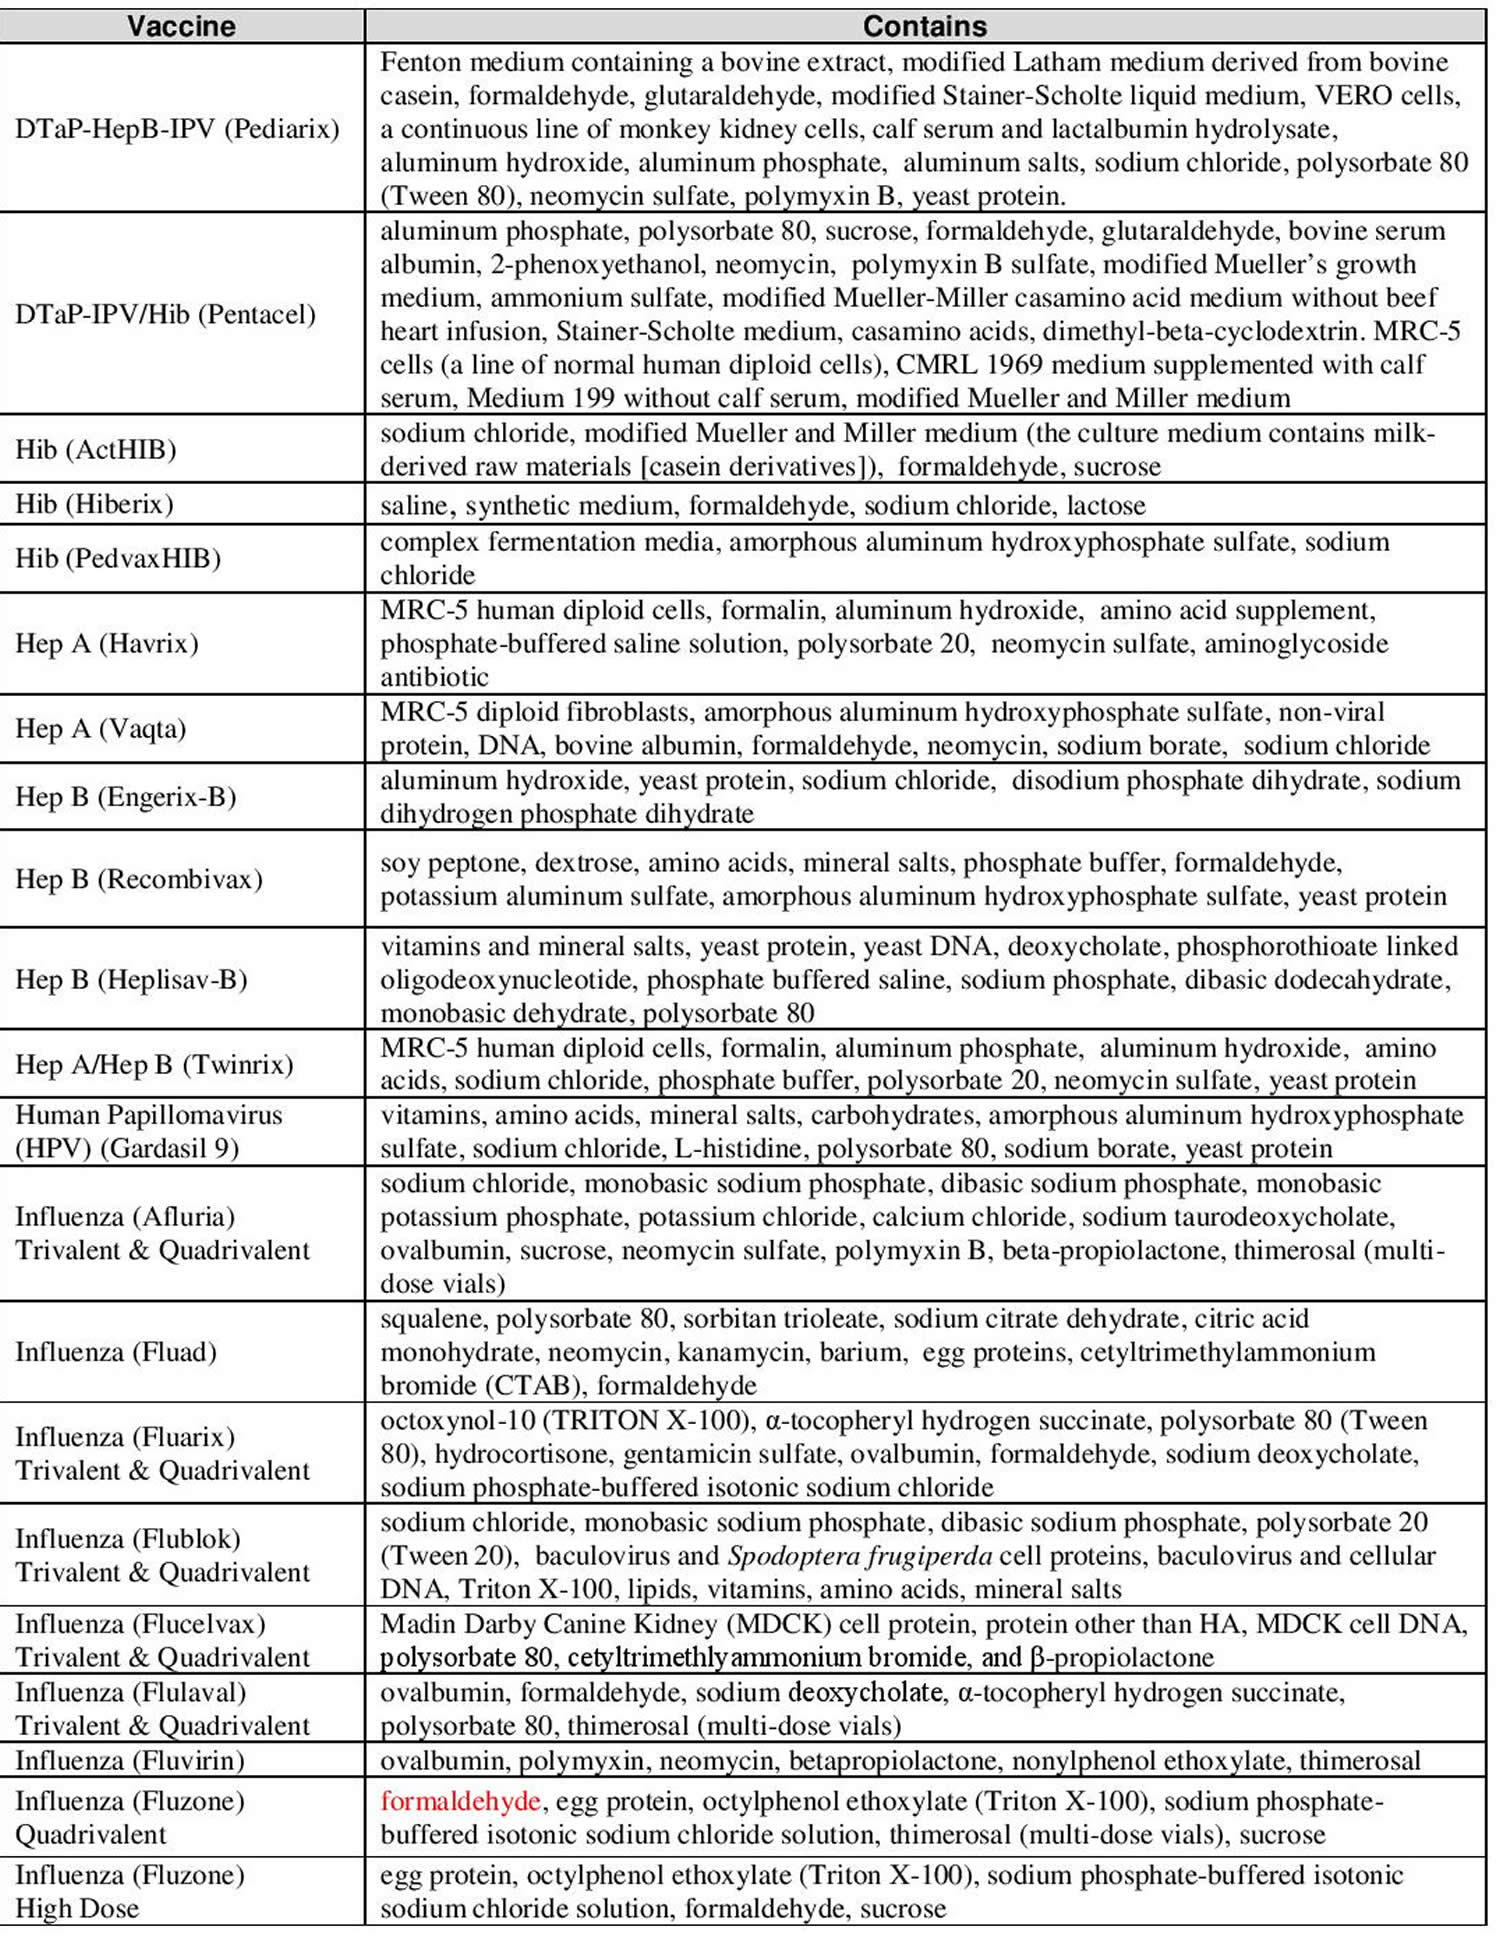 Vaccine ingredients